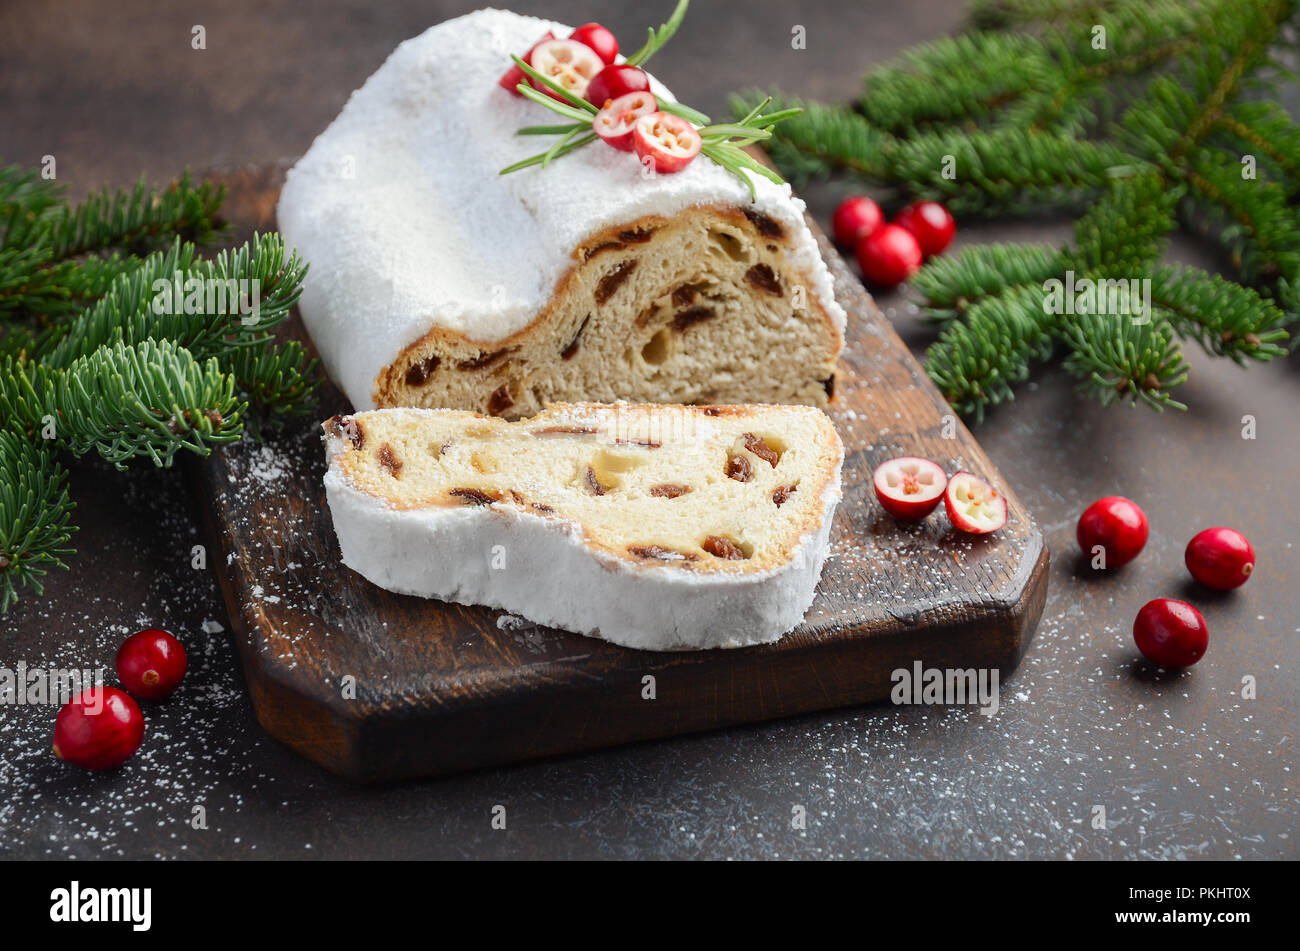 Christmas Stollen. Traditional German, European Festive Dessert. Holiday Concept Decorated with Fir Branches and Cranberries. - Stock Image